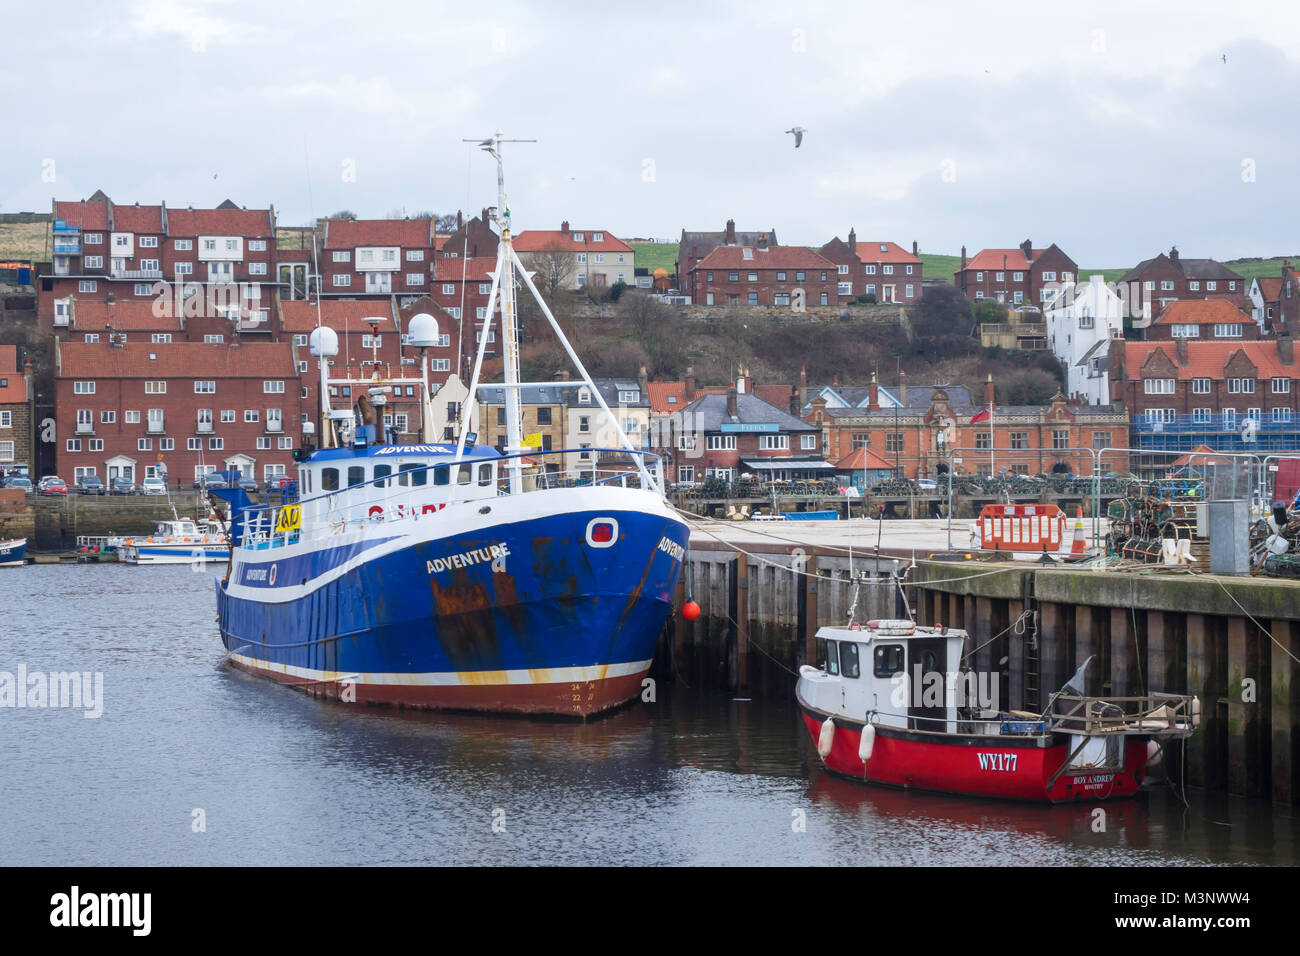 guard vessel adventure in whitby harbour the vessel is. Black Bedroom Furniture Sets. Home Design Ideas